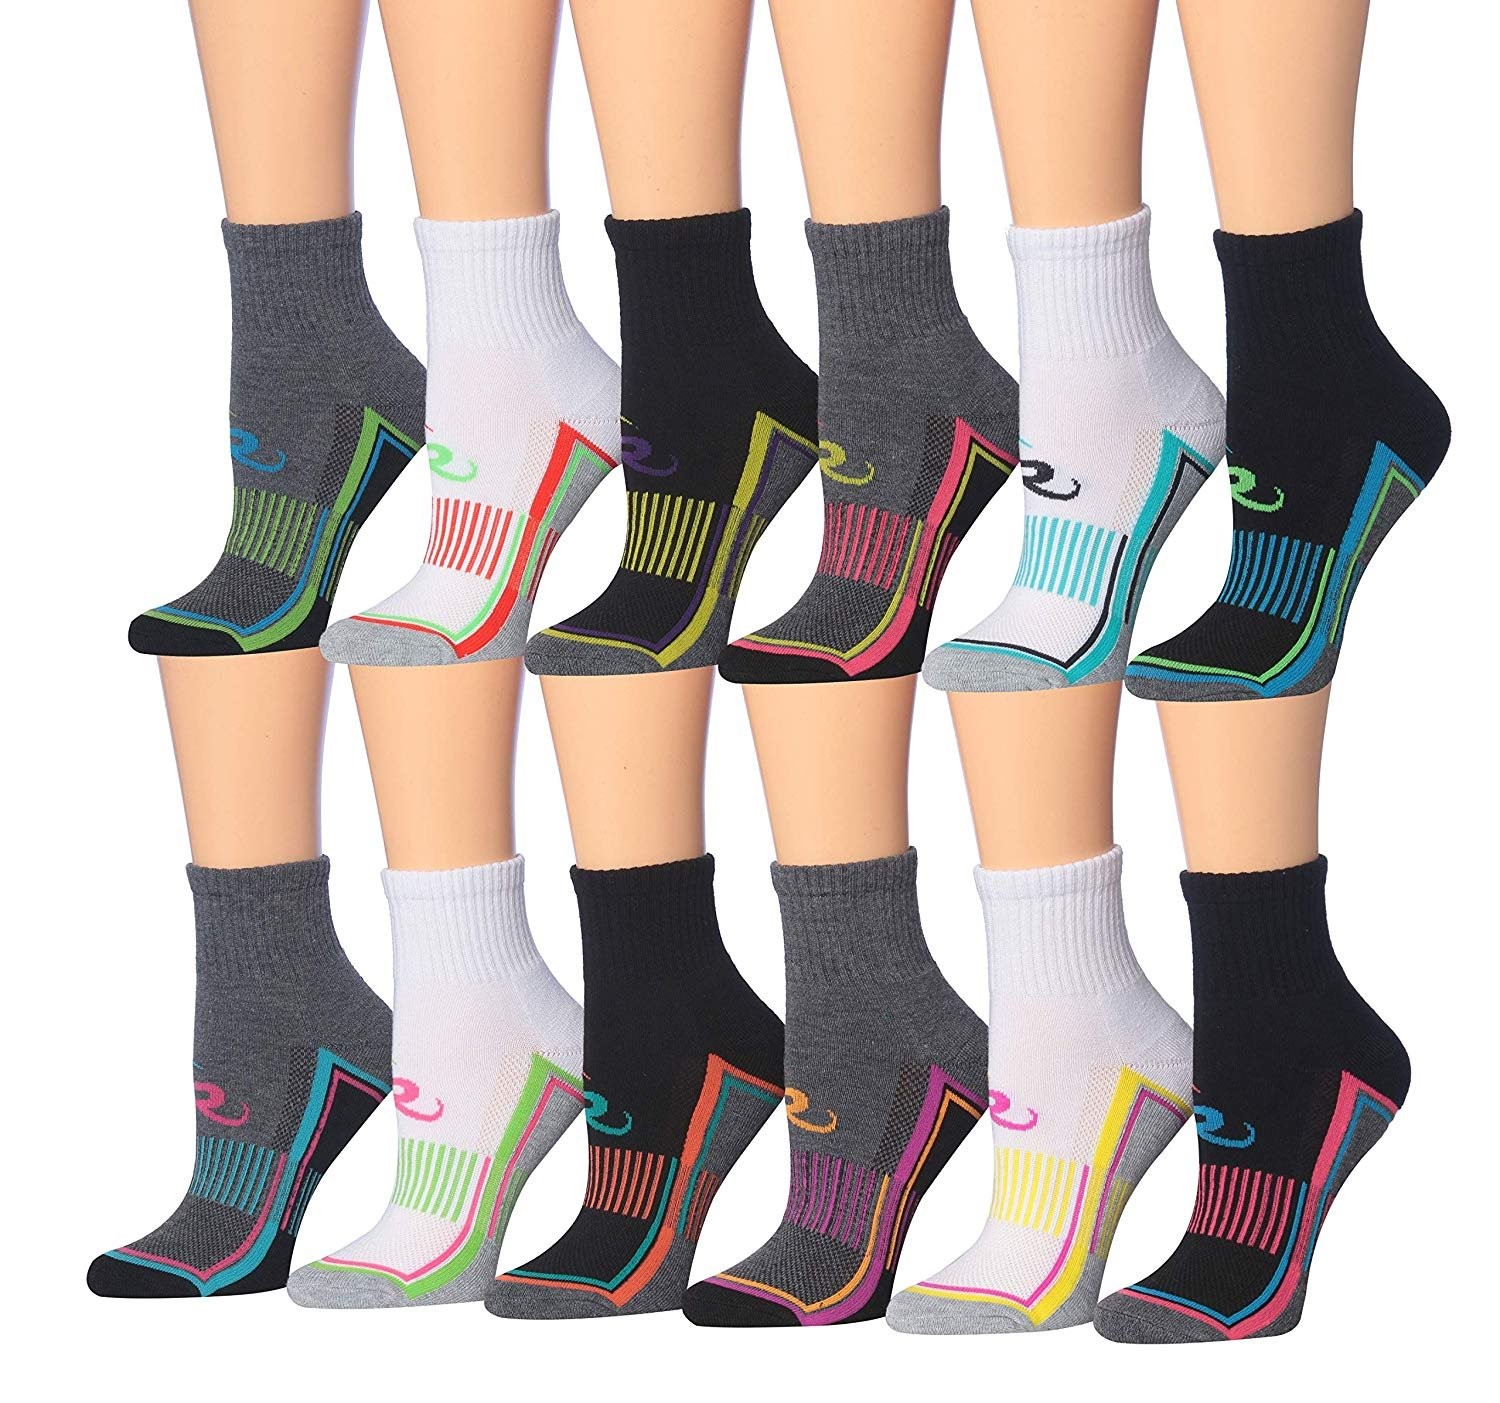 Champion Performance Liner Socks Womens Size Med 4-Pairs Choose Color Combo New